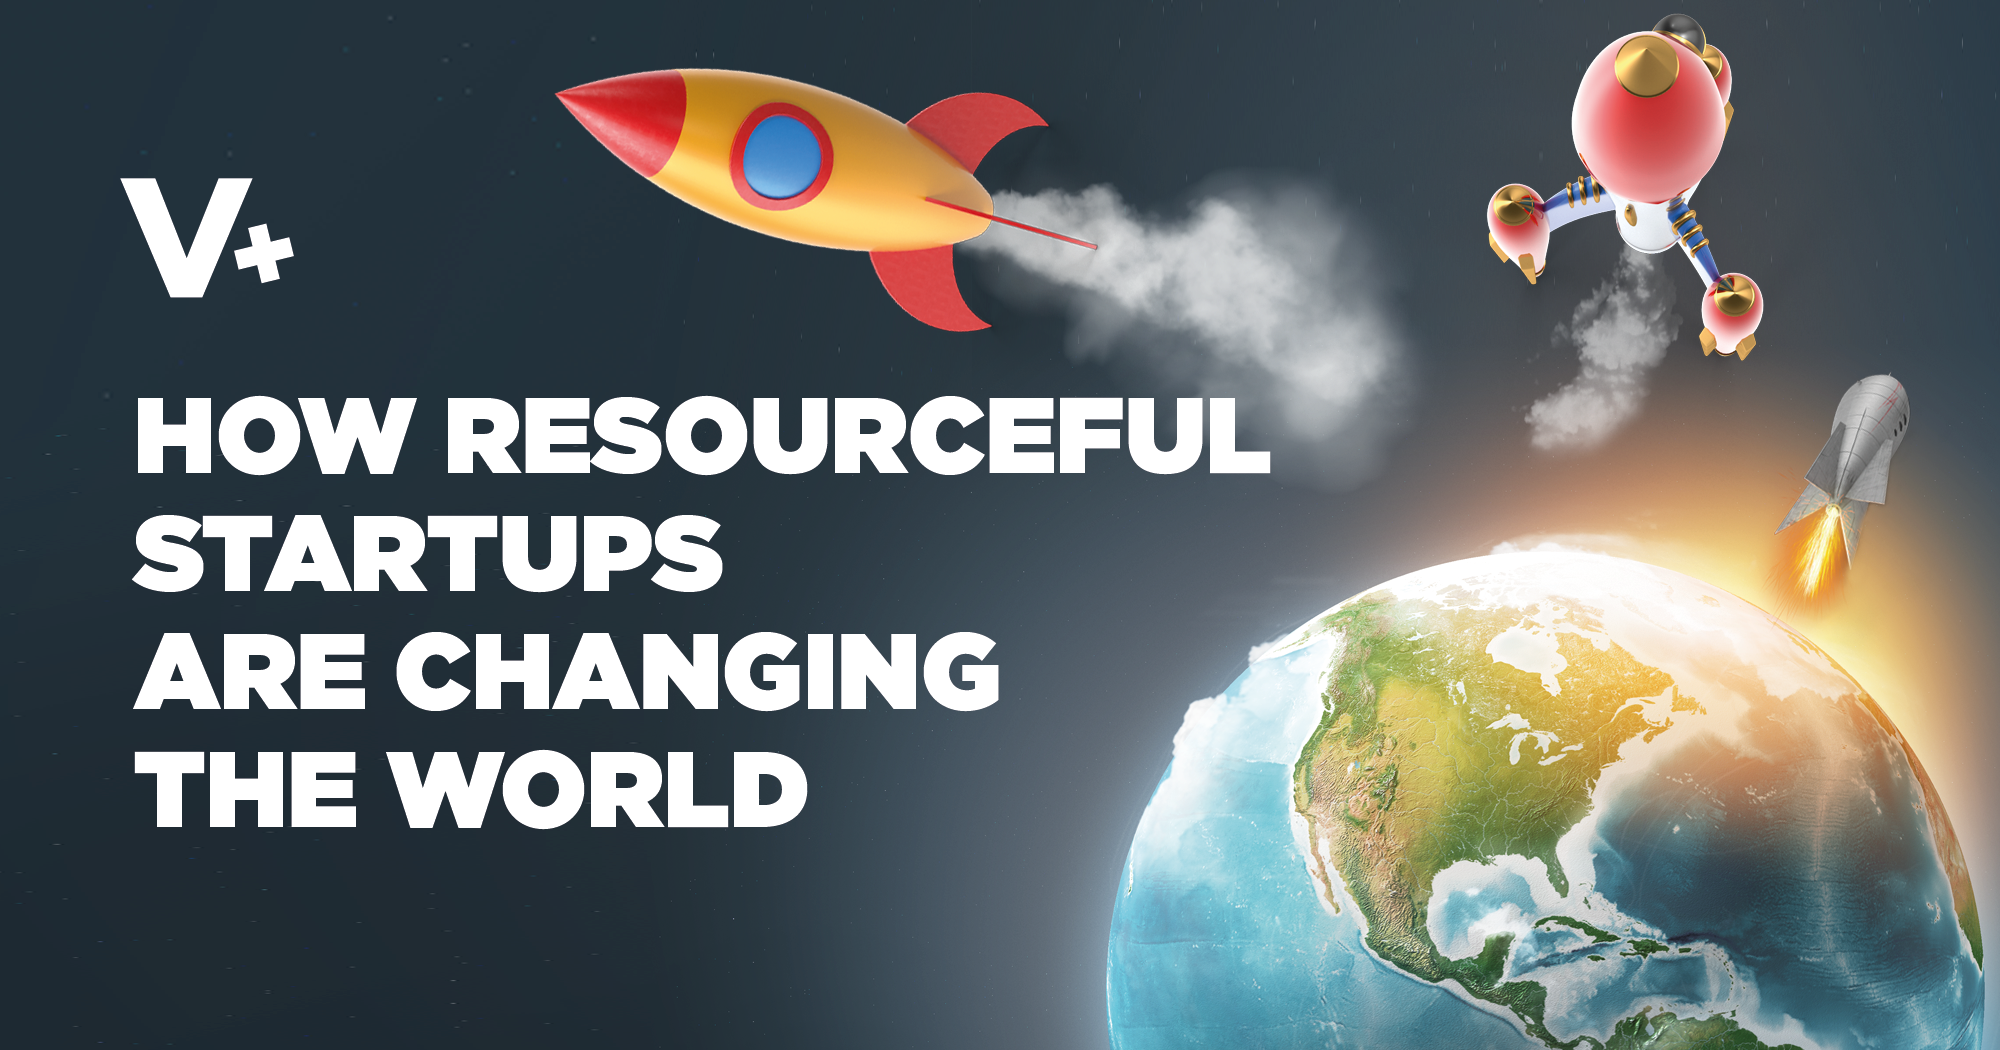 How Resourceful Startups are Changing the World